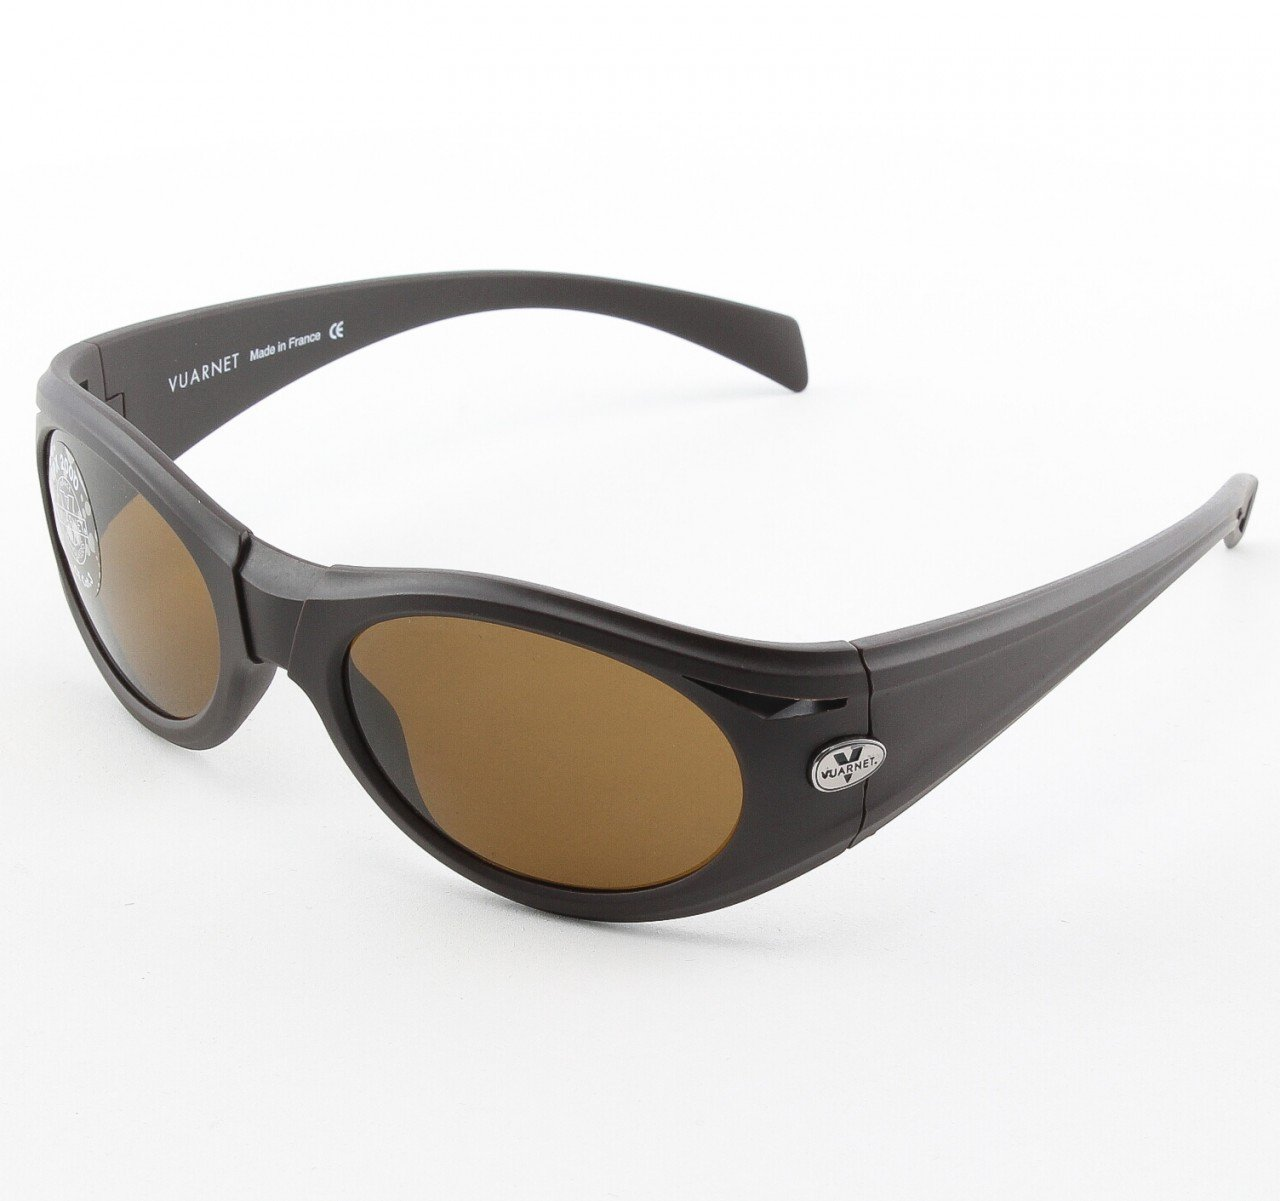 Vuarnet VL 1125 Sunglasses Col. P00F 2121 Brown with Brown PX2000 Lenses